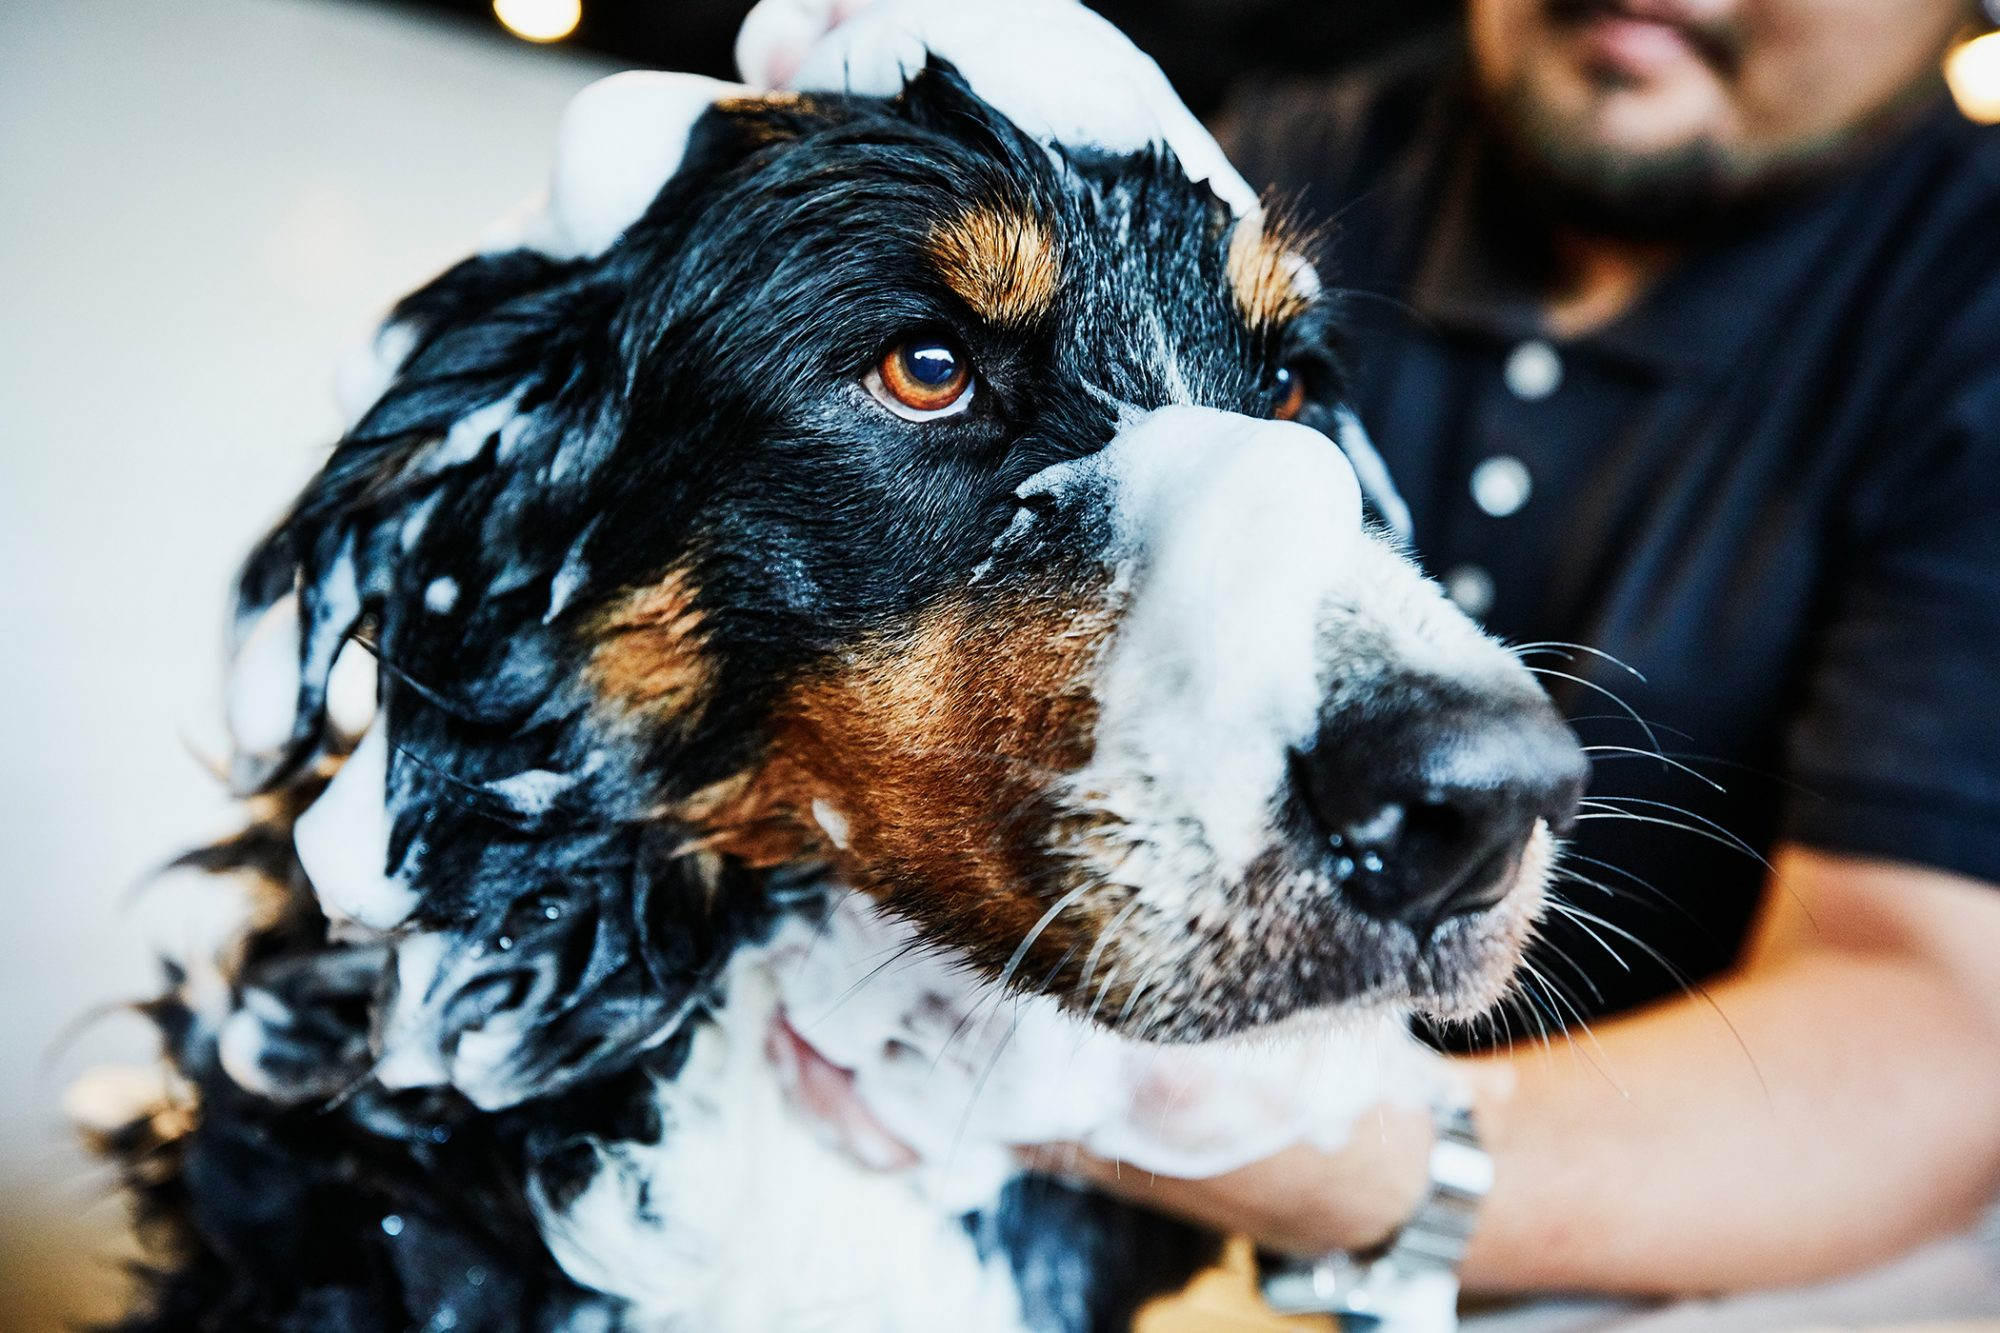 Black and brown spotted dog gets a bath